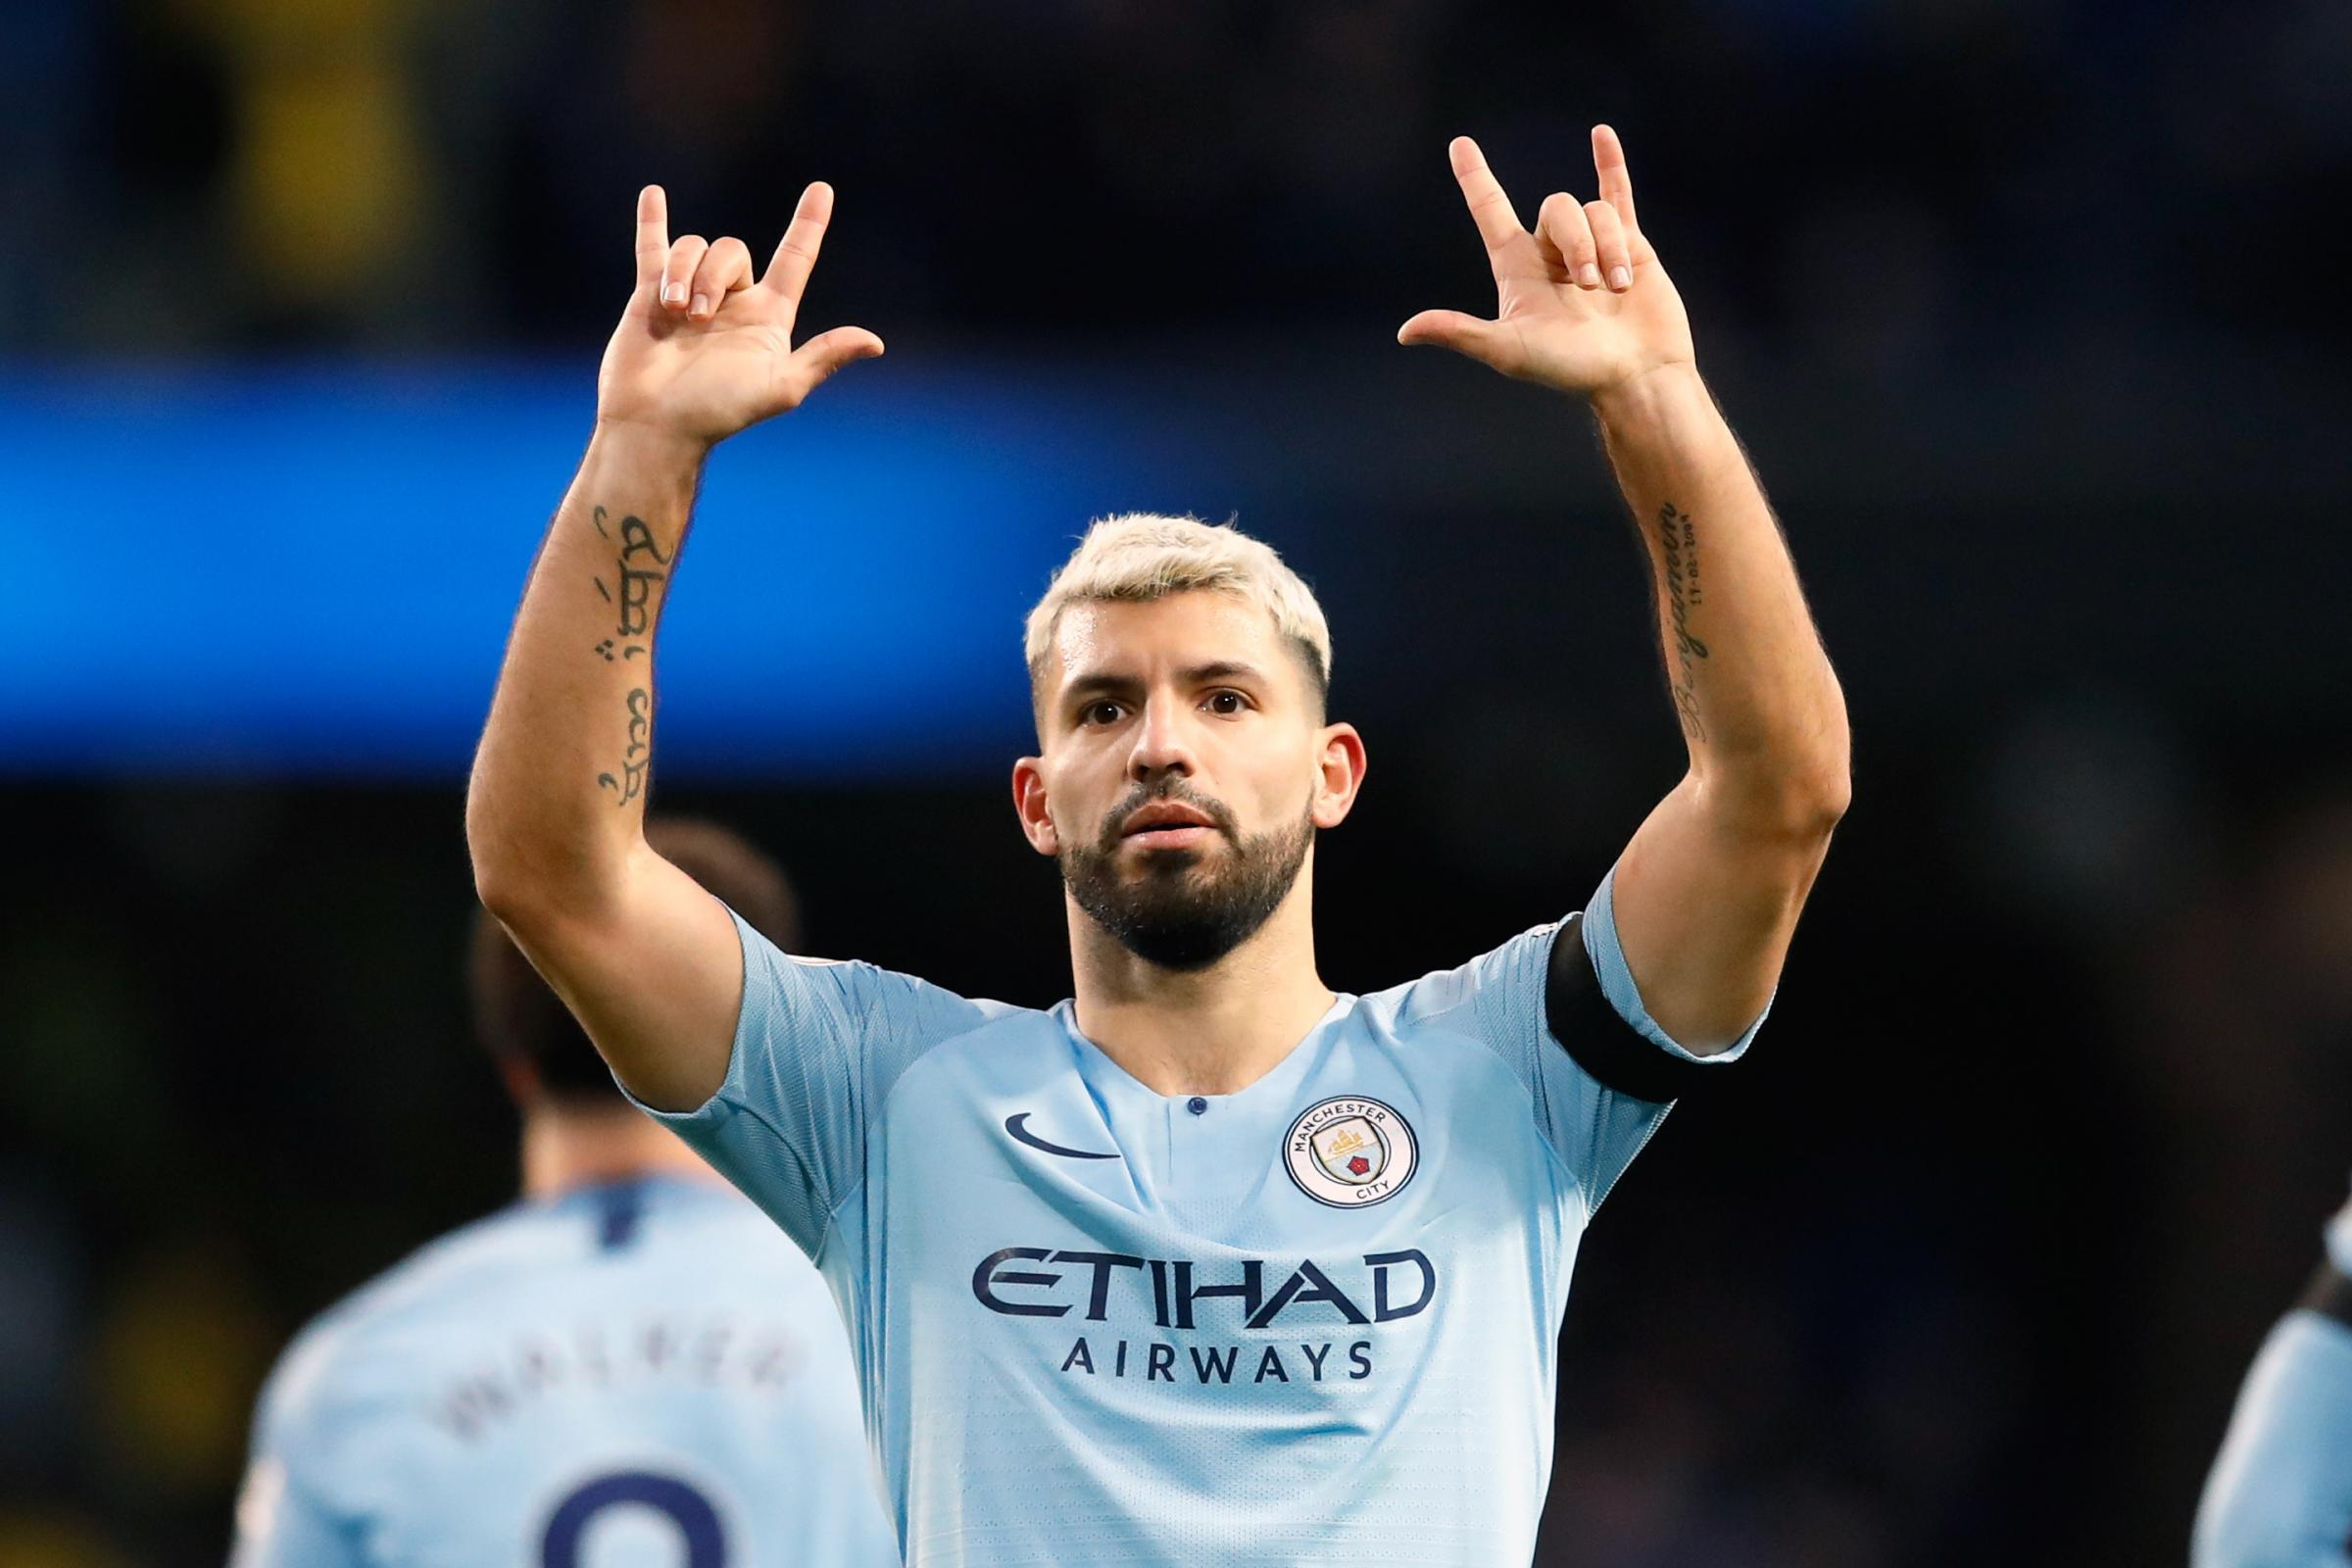 Manchester City striker Sergio Aguero celebrates completing his hat-trick during his side's 6-0 rout of Chelsea at the Etihad Stadium